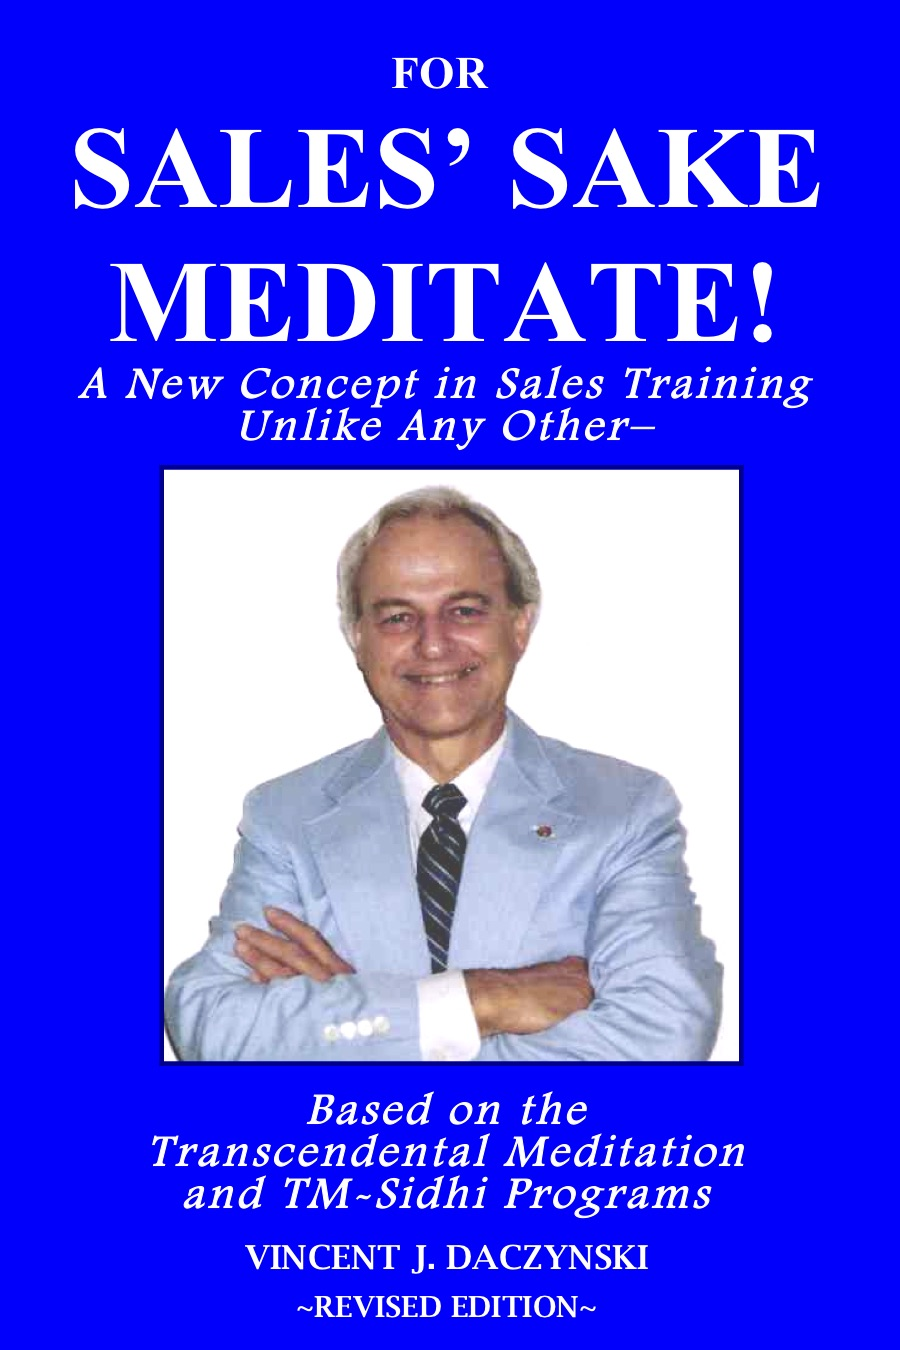 Inspirational sales training book about meditation as a means to boost sales.